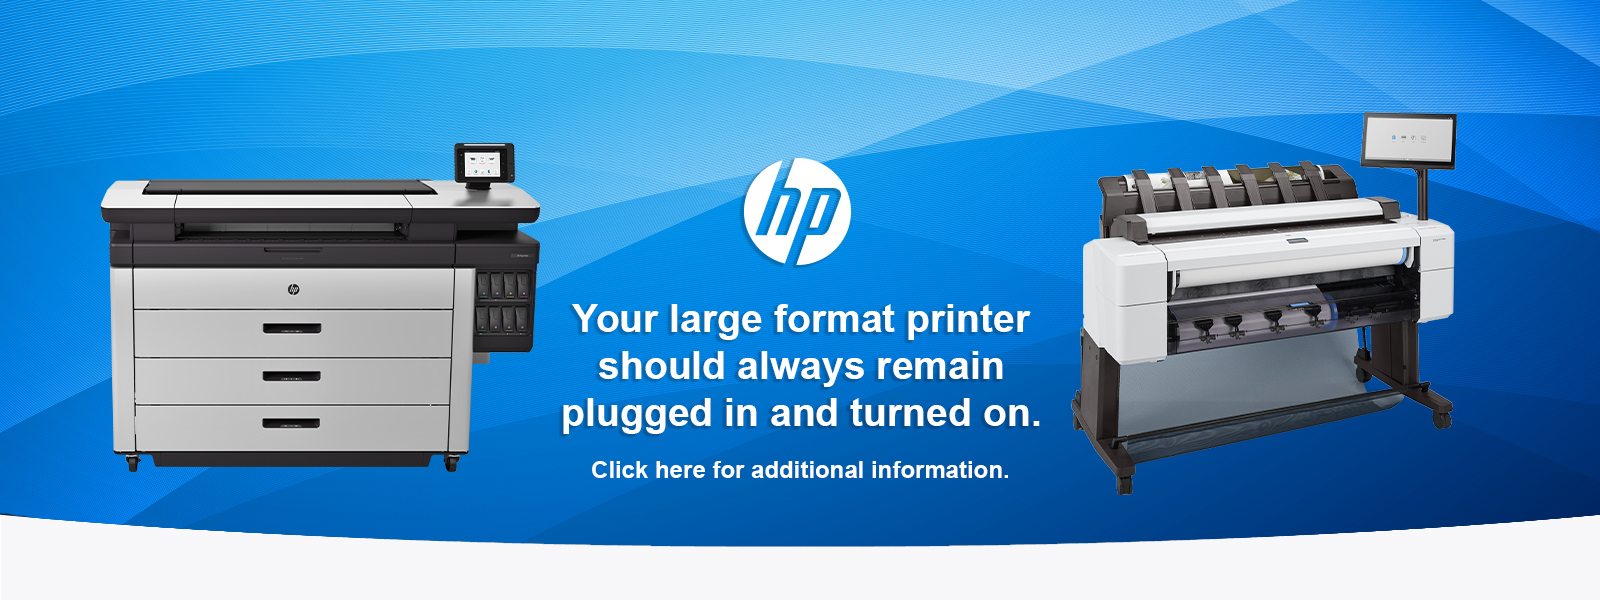 Your large format printer should always remain plugged in